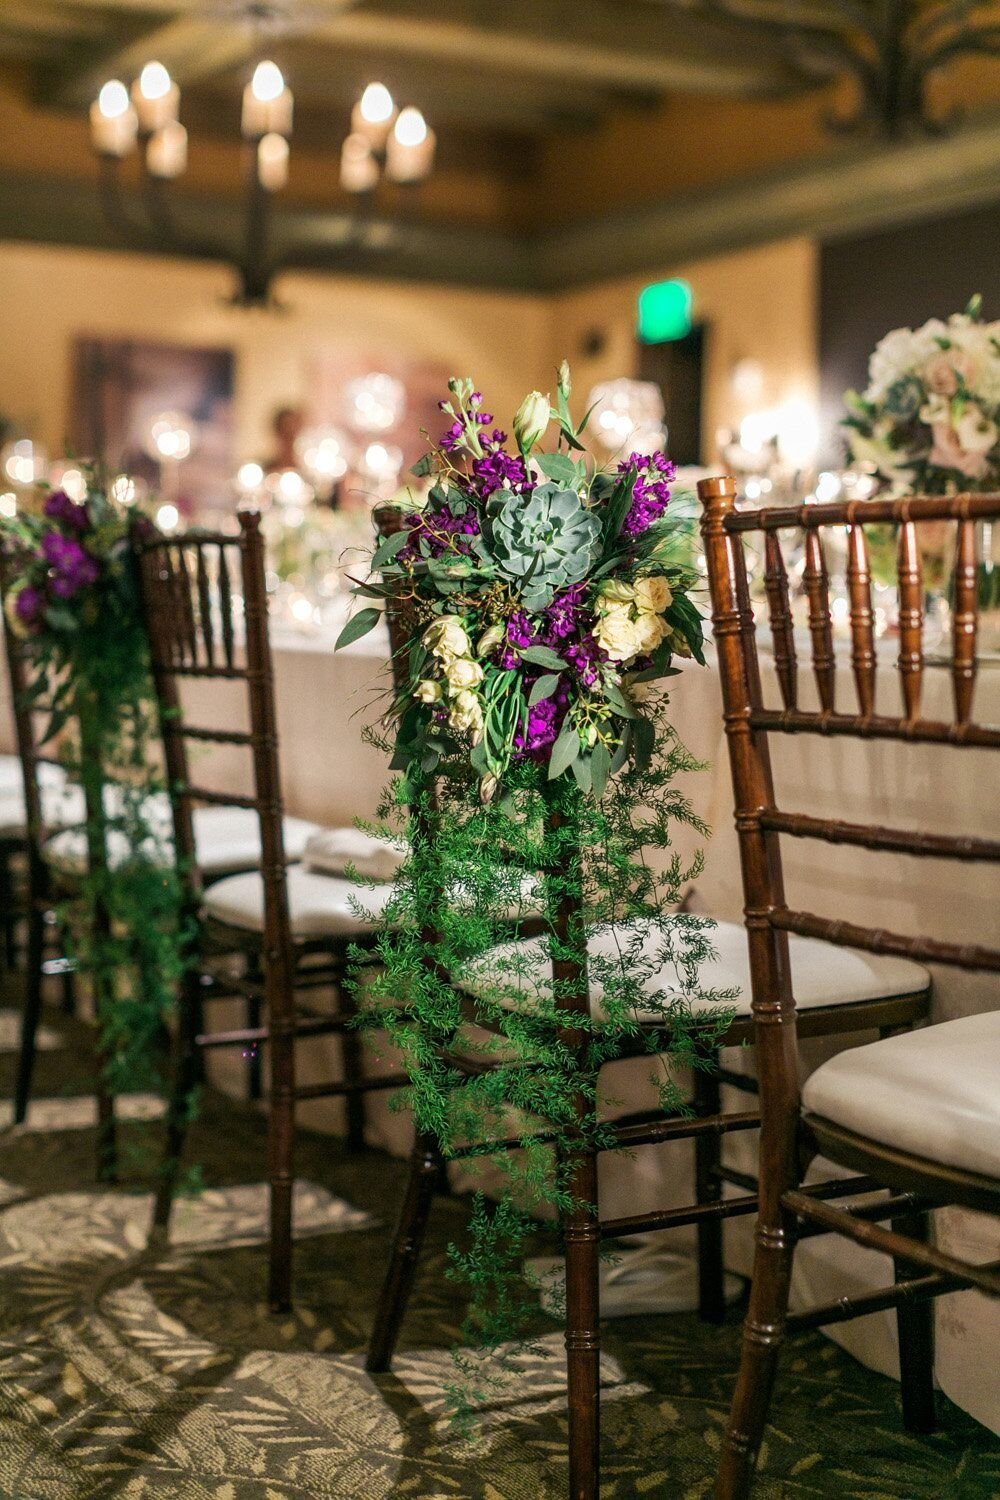 Your-Event-Florist-Arizona-Wedding-Flowers136